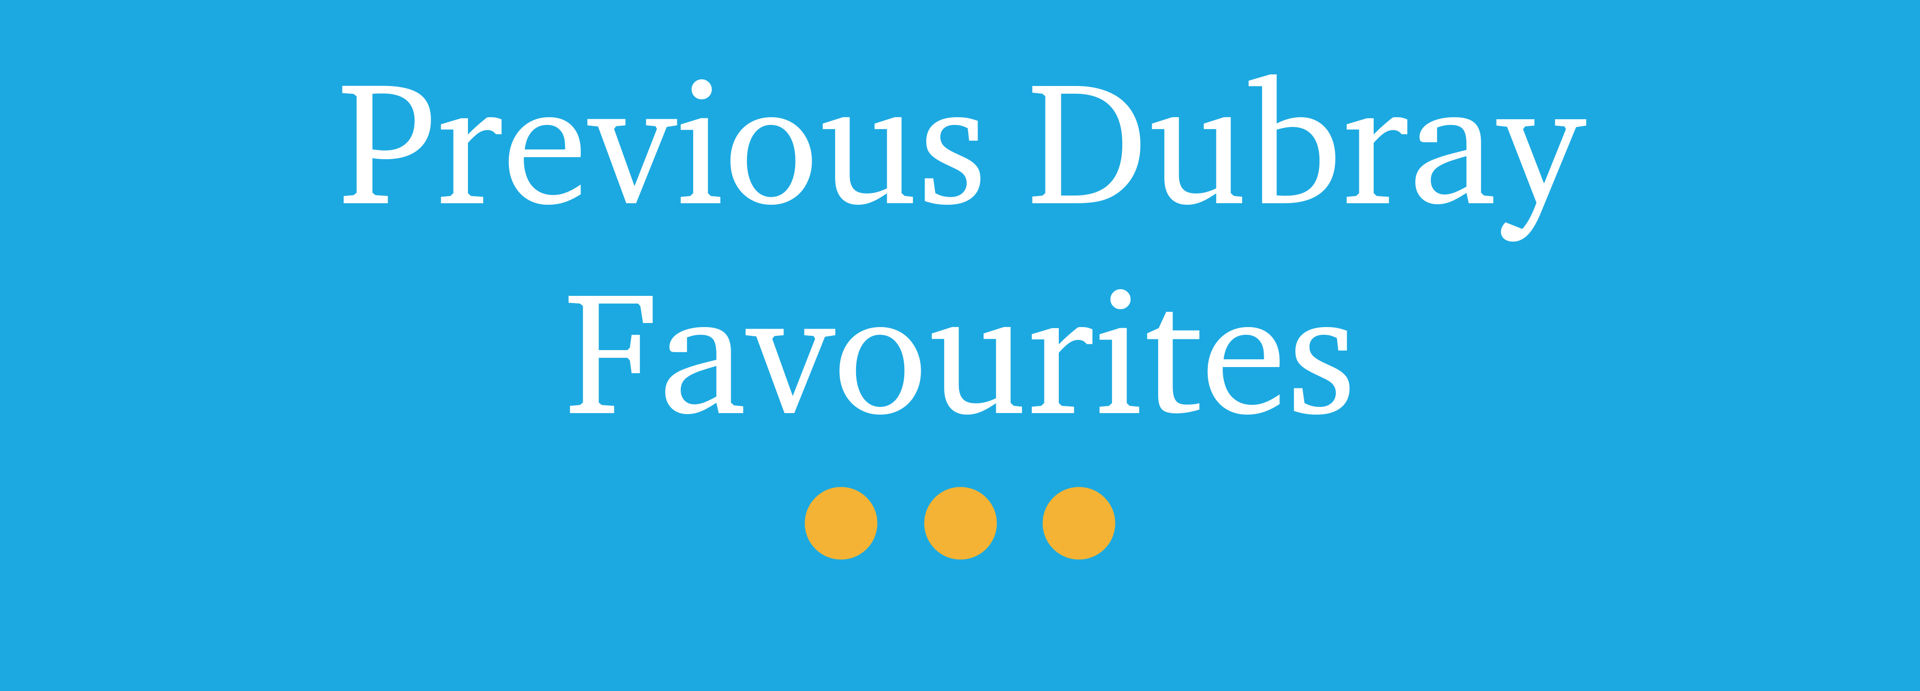 Picture for category Previous Dubray Favourites - Children's